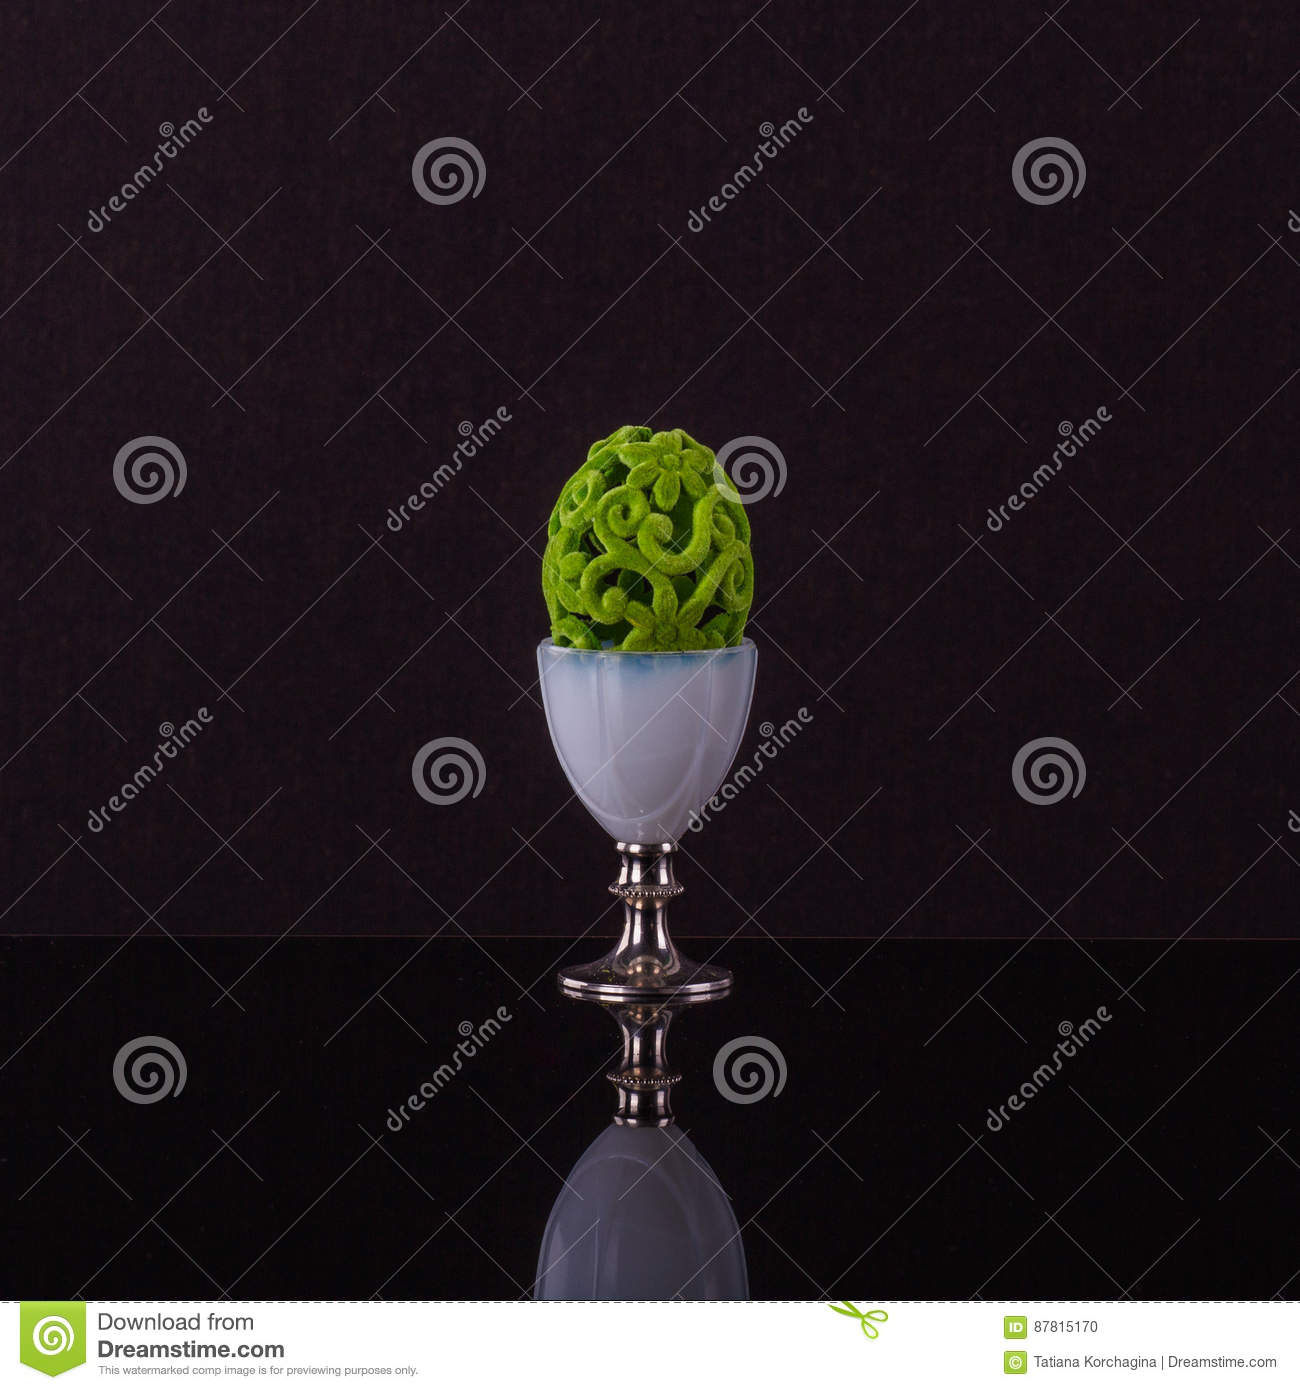 Prominent egg cup with elegante posh green Easter egg